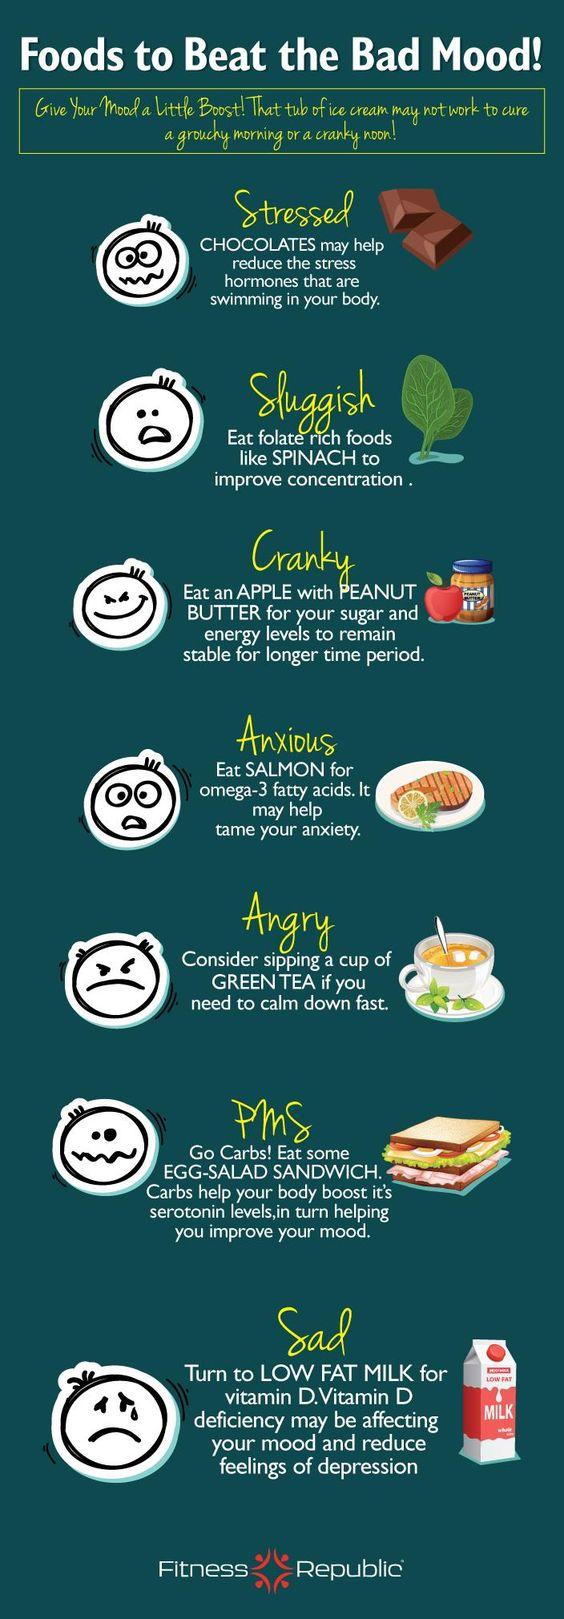 Foods to beat the bad mood